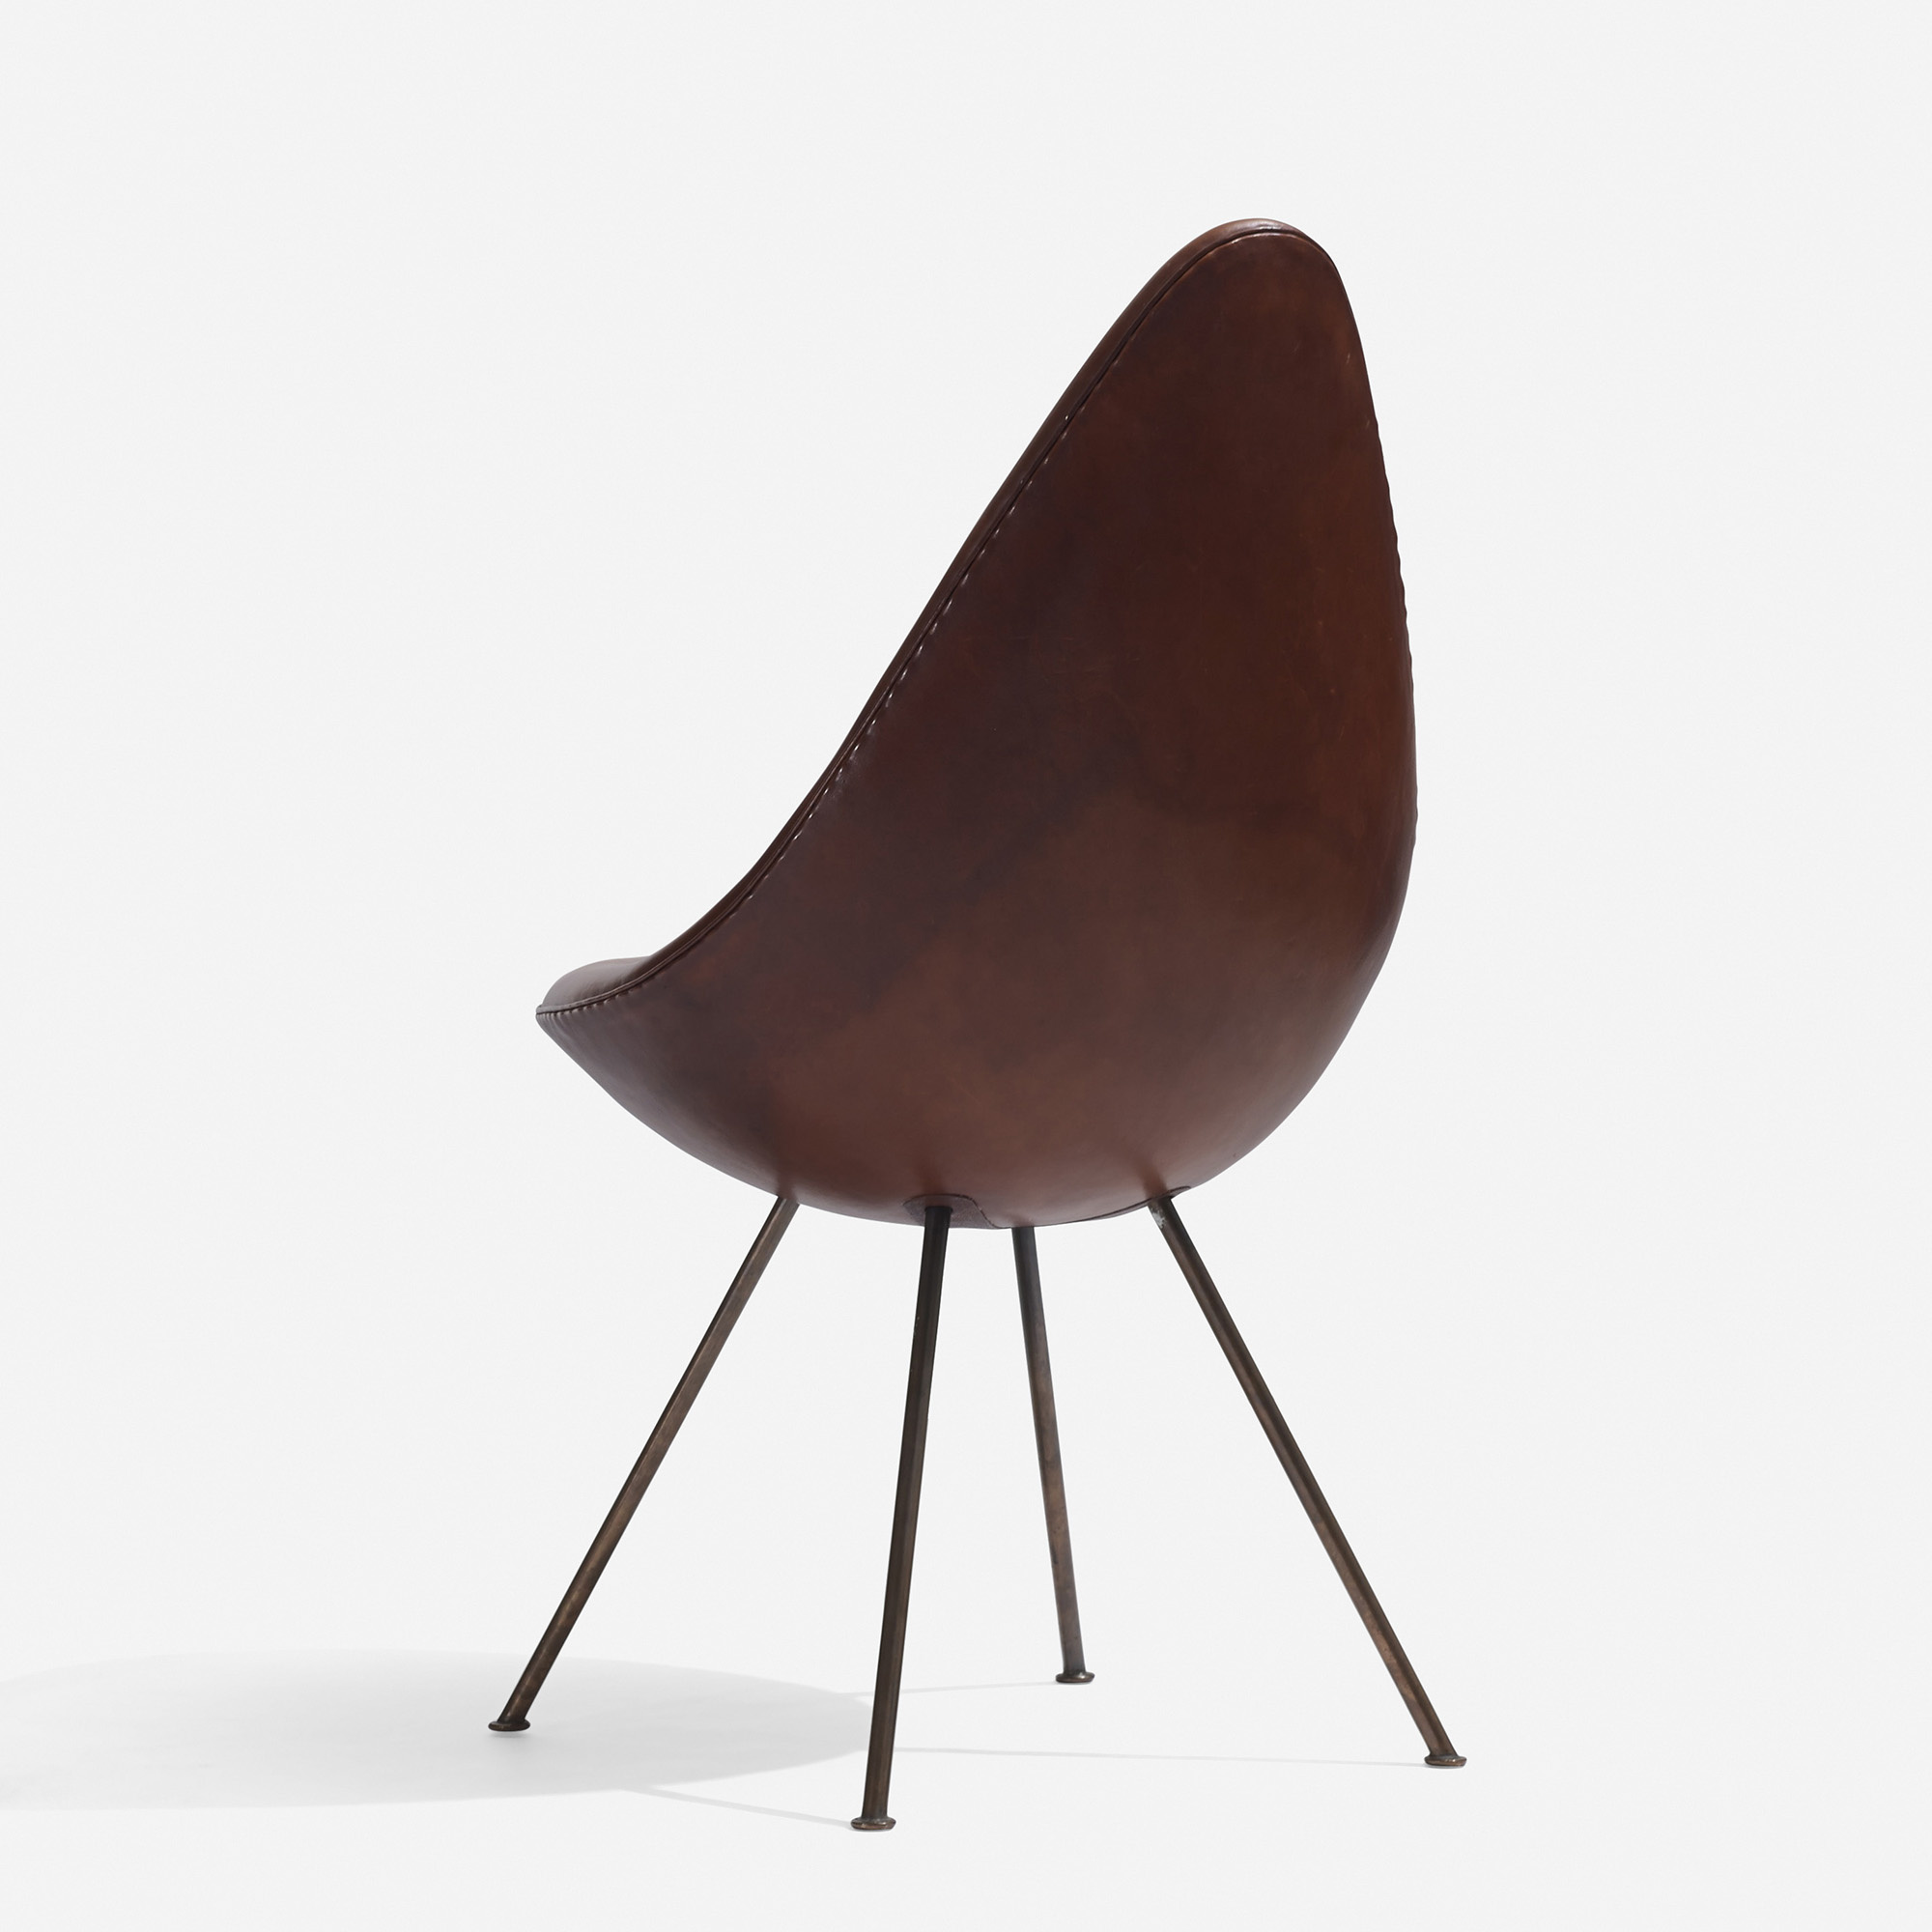 Arne jacobsen drop chair -  134 Arne Jacobsen Drop Chair From The Sas Royal Hotel 2 Of 4